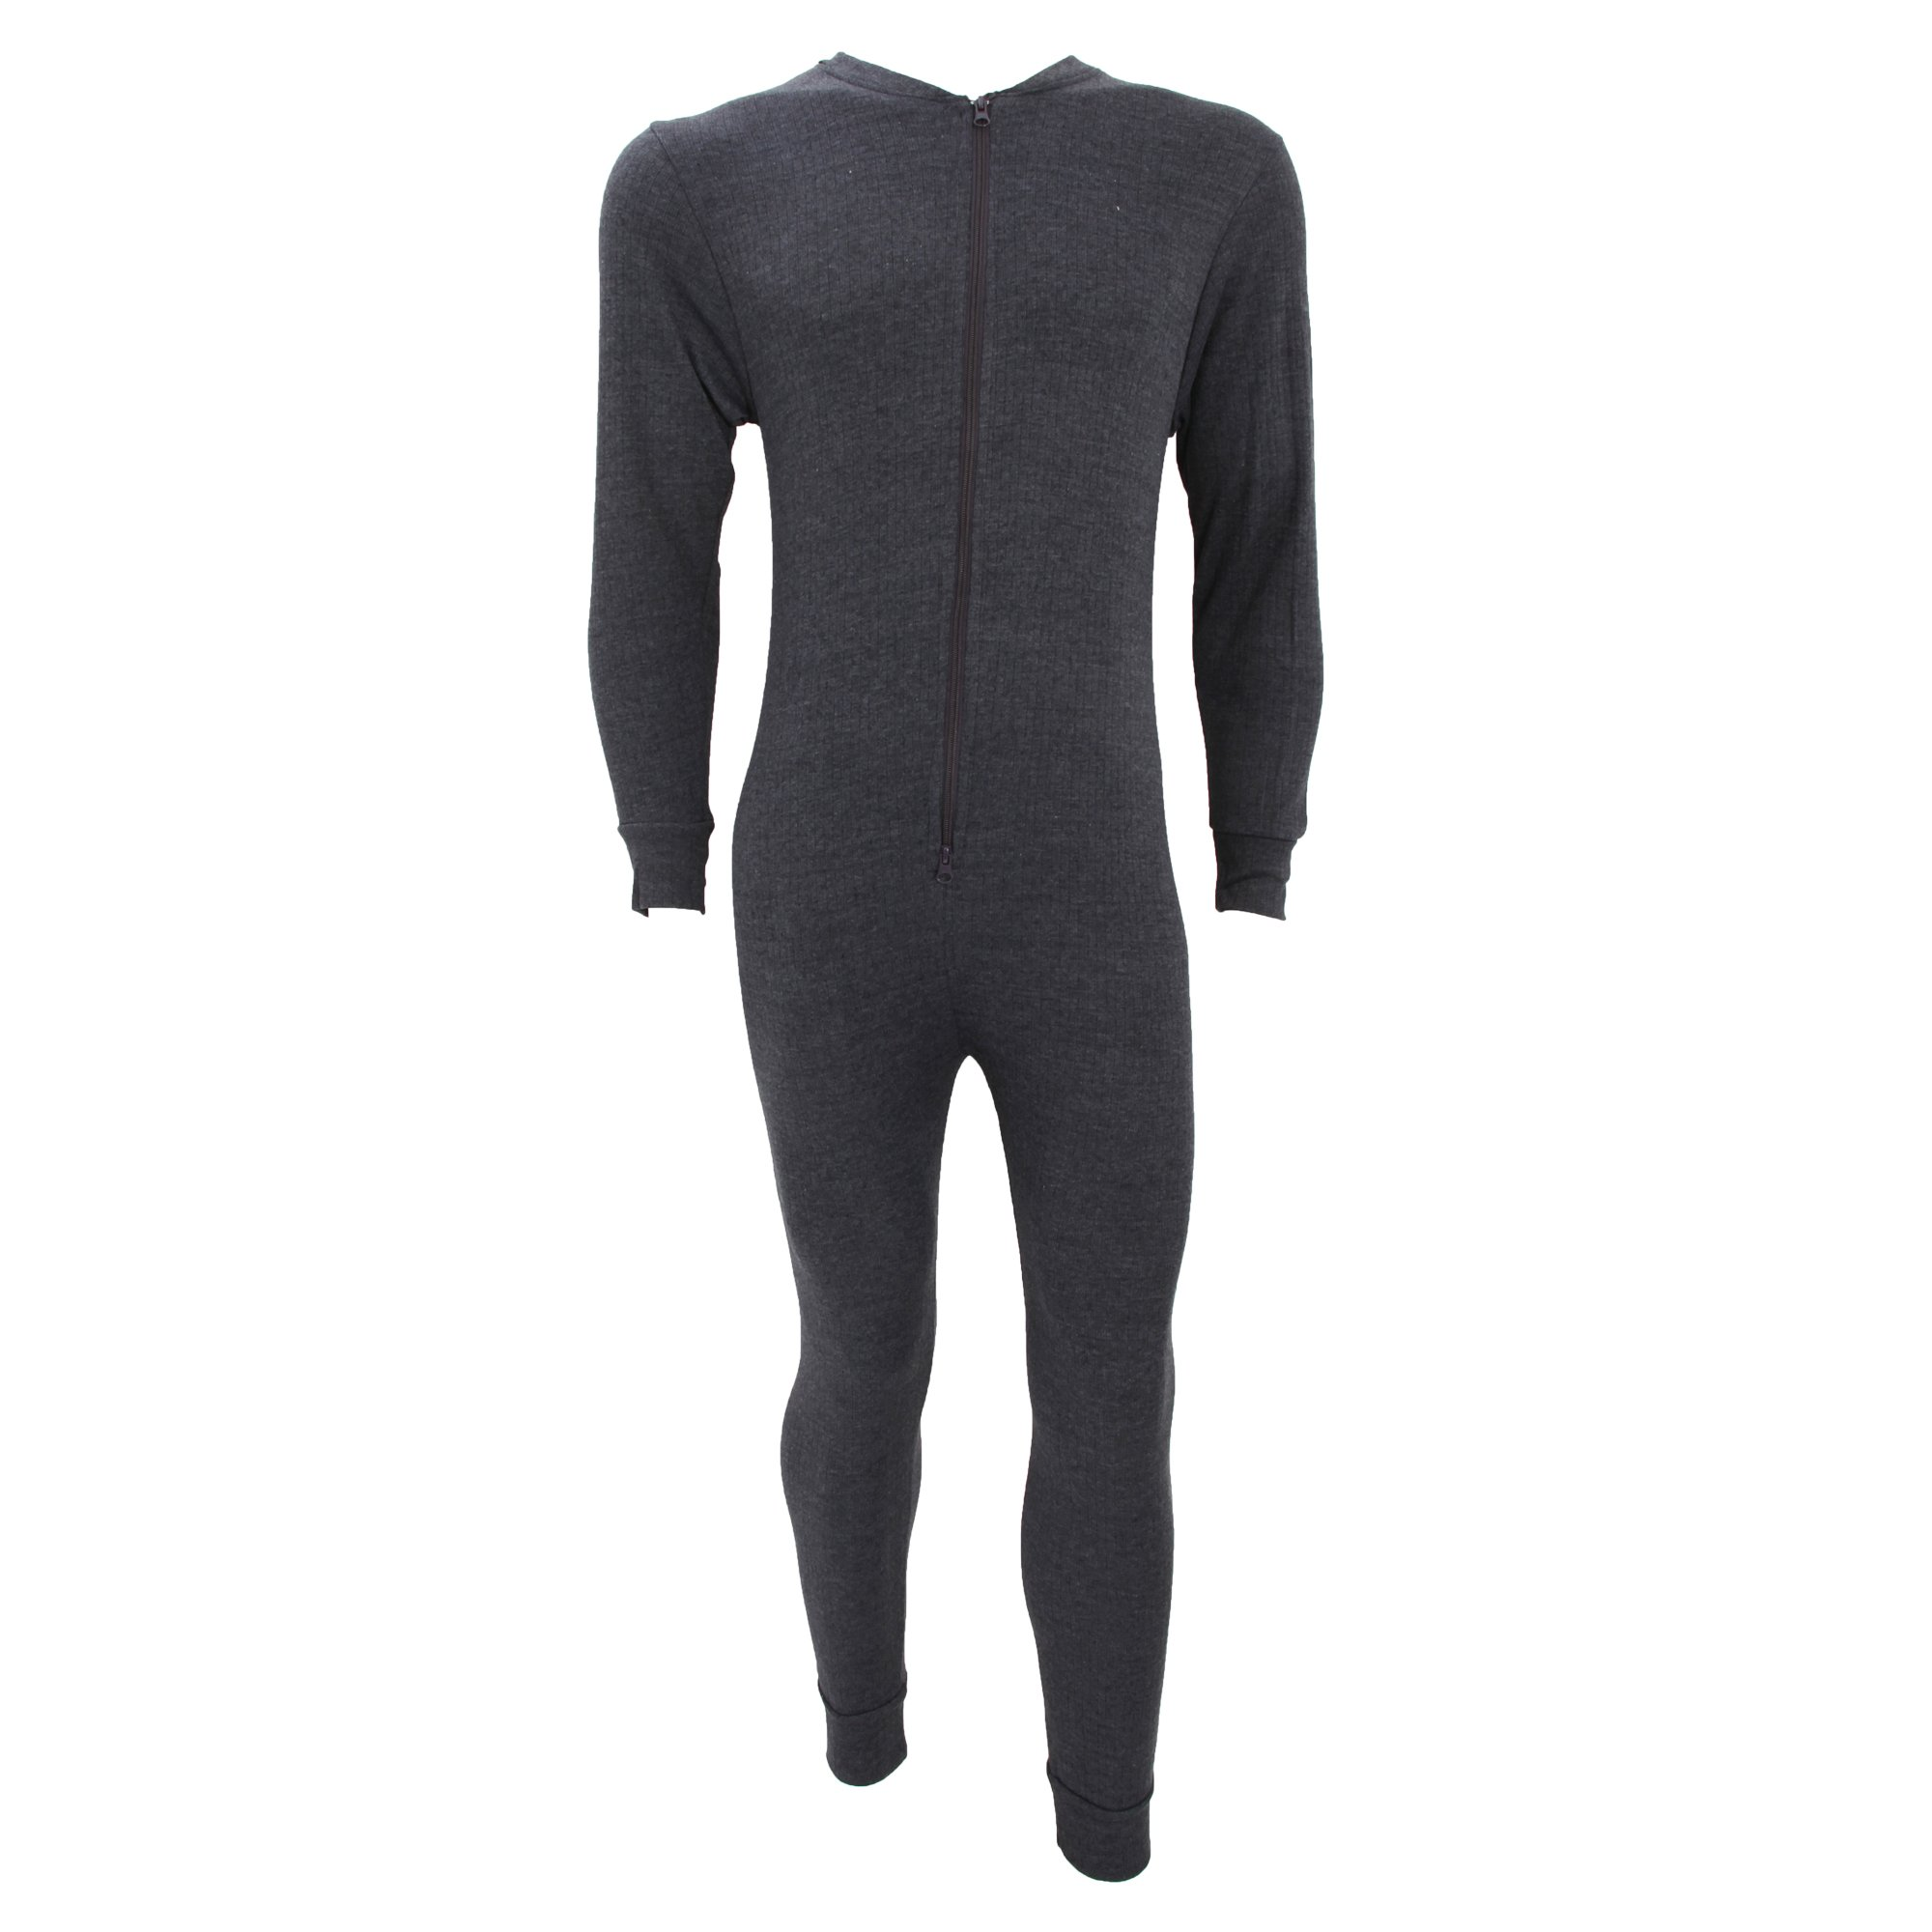 Floso Mens Thermal Underwear All in One Union Suit with Rear Flap (Standard Range) (Chest: 44-46 inch (X-Large)) (Charcoal) by Floso